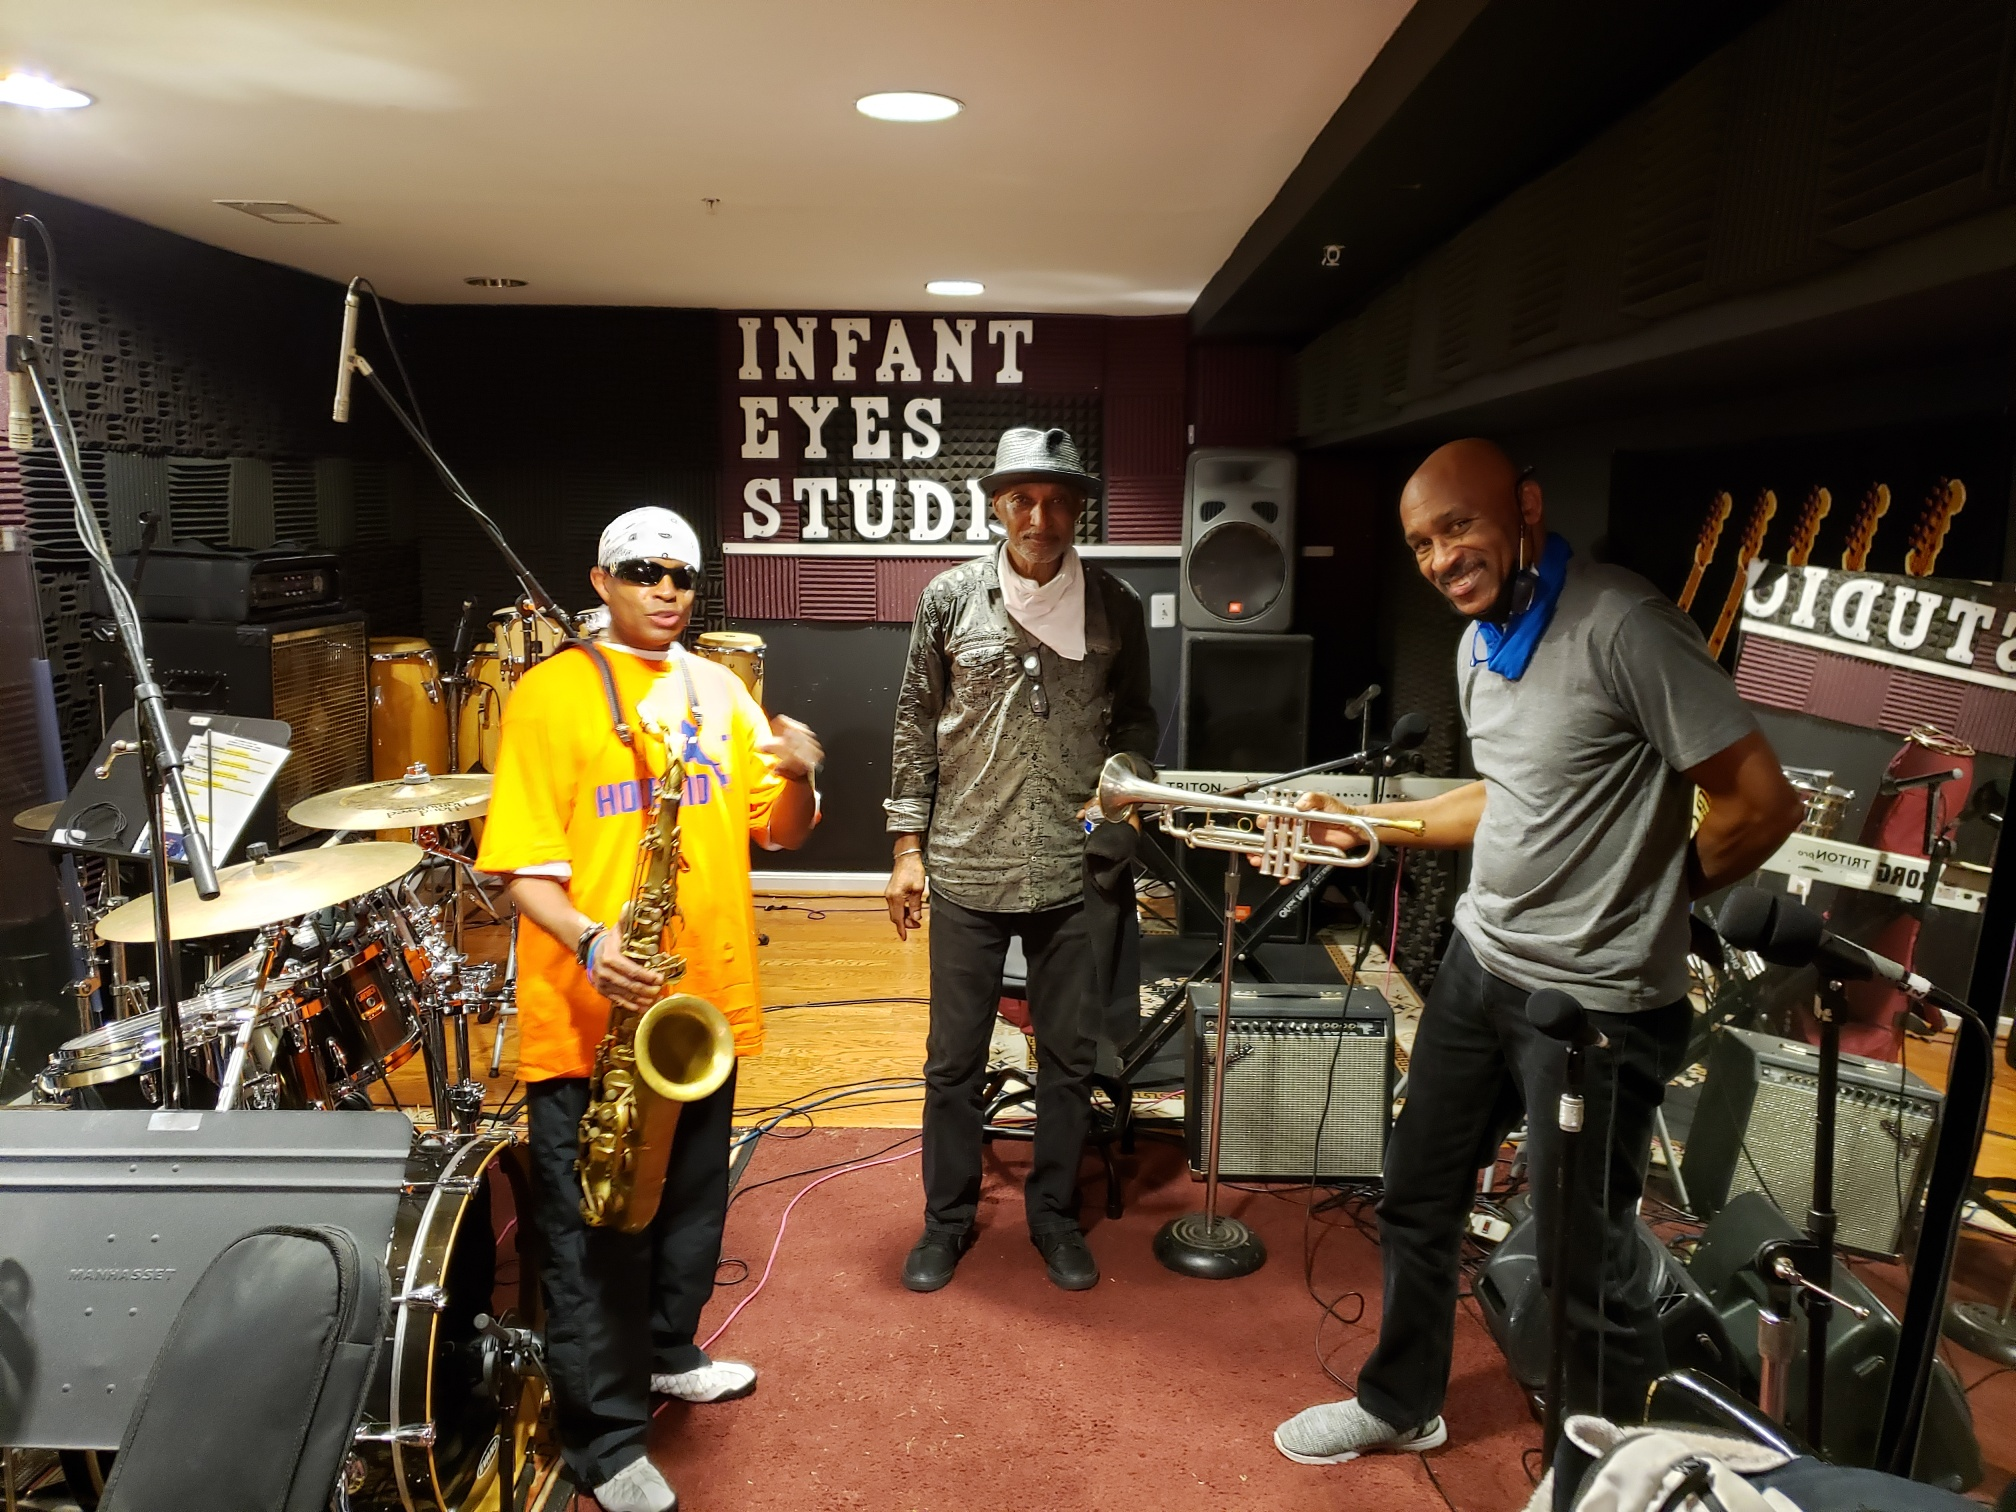 Johnny Long, Ignatius Mason and Buzzy Pindell hanging out in the Infant Eyes Studio